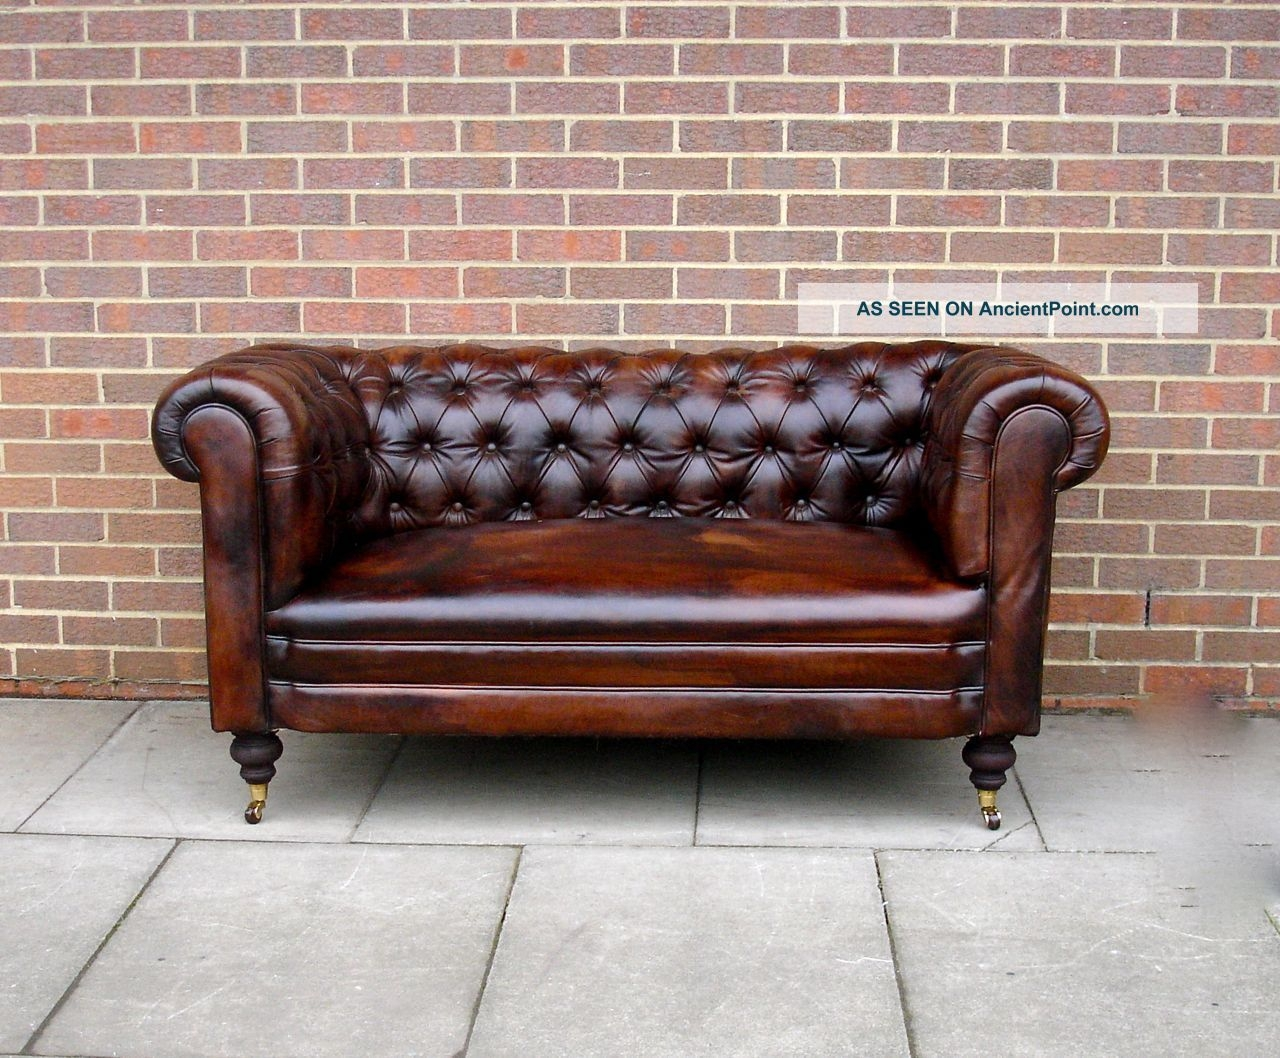 Chesterfield Vintage Sofa 15 Collection Of Vintage Chesterfield Sofas Sofa Ideas